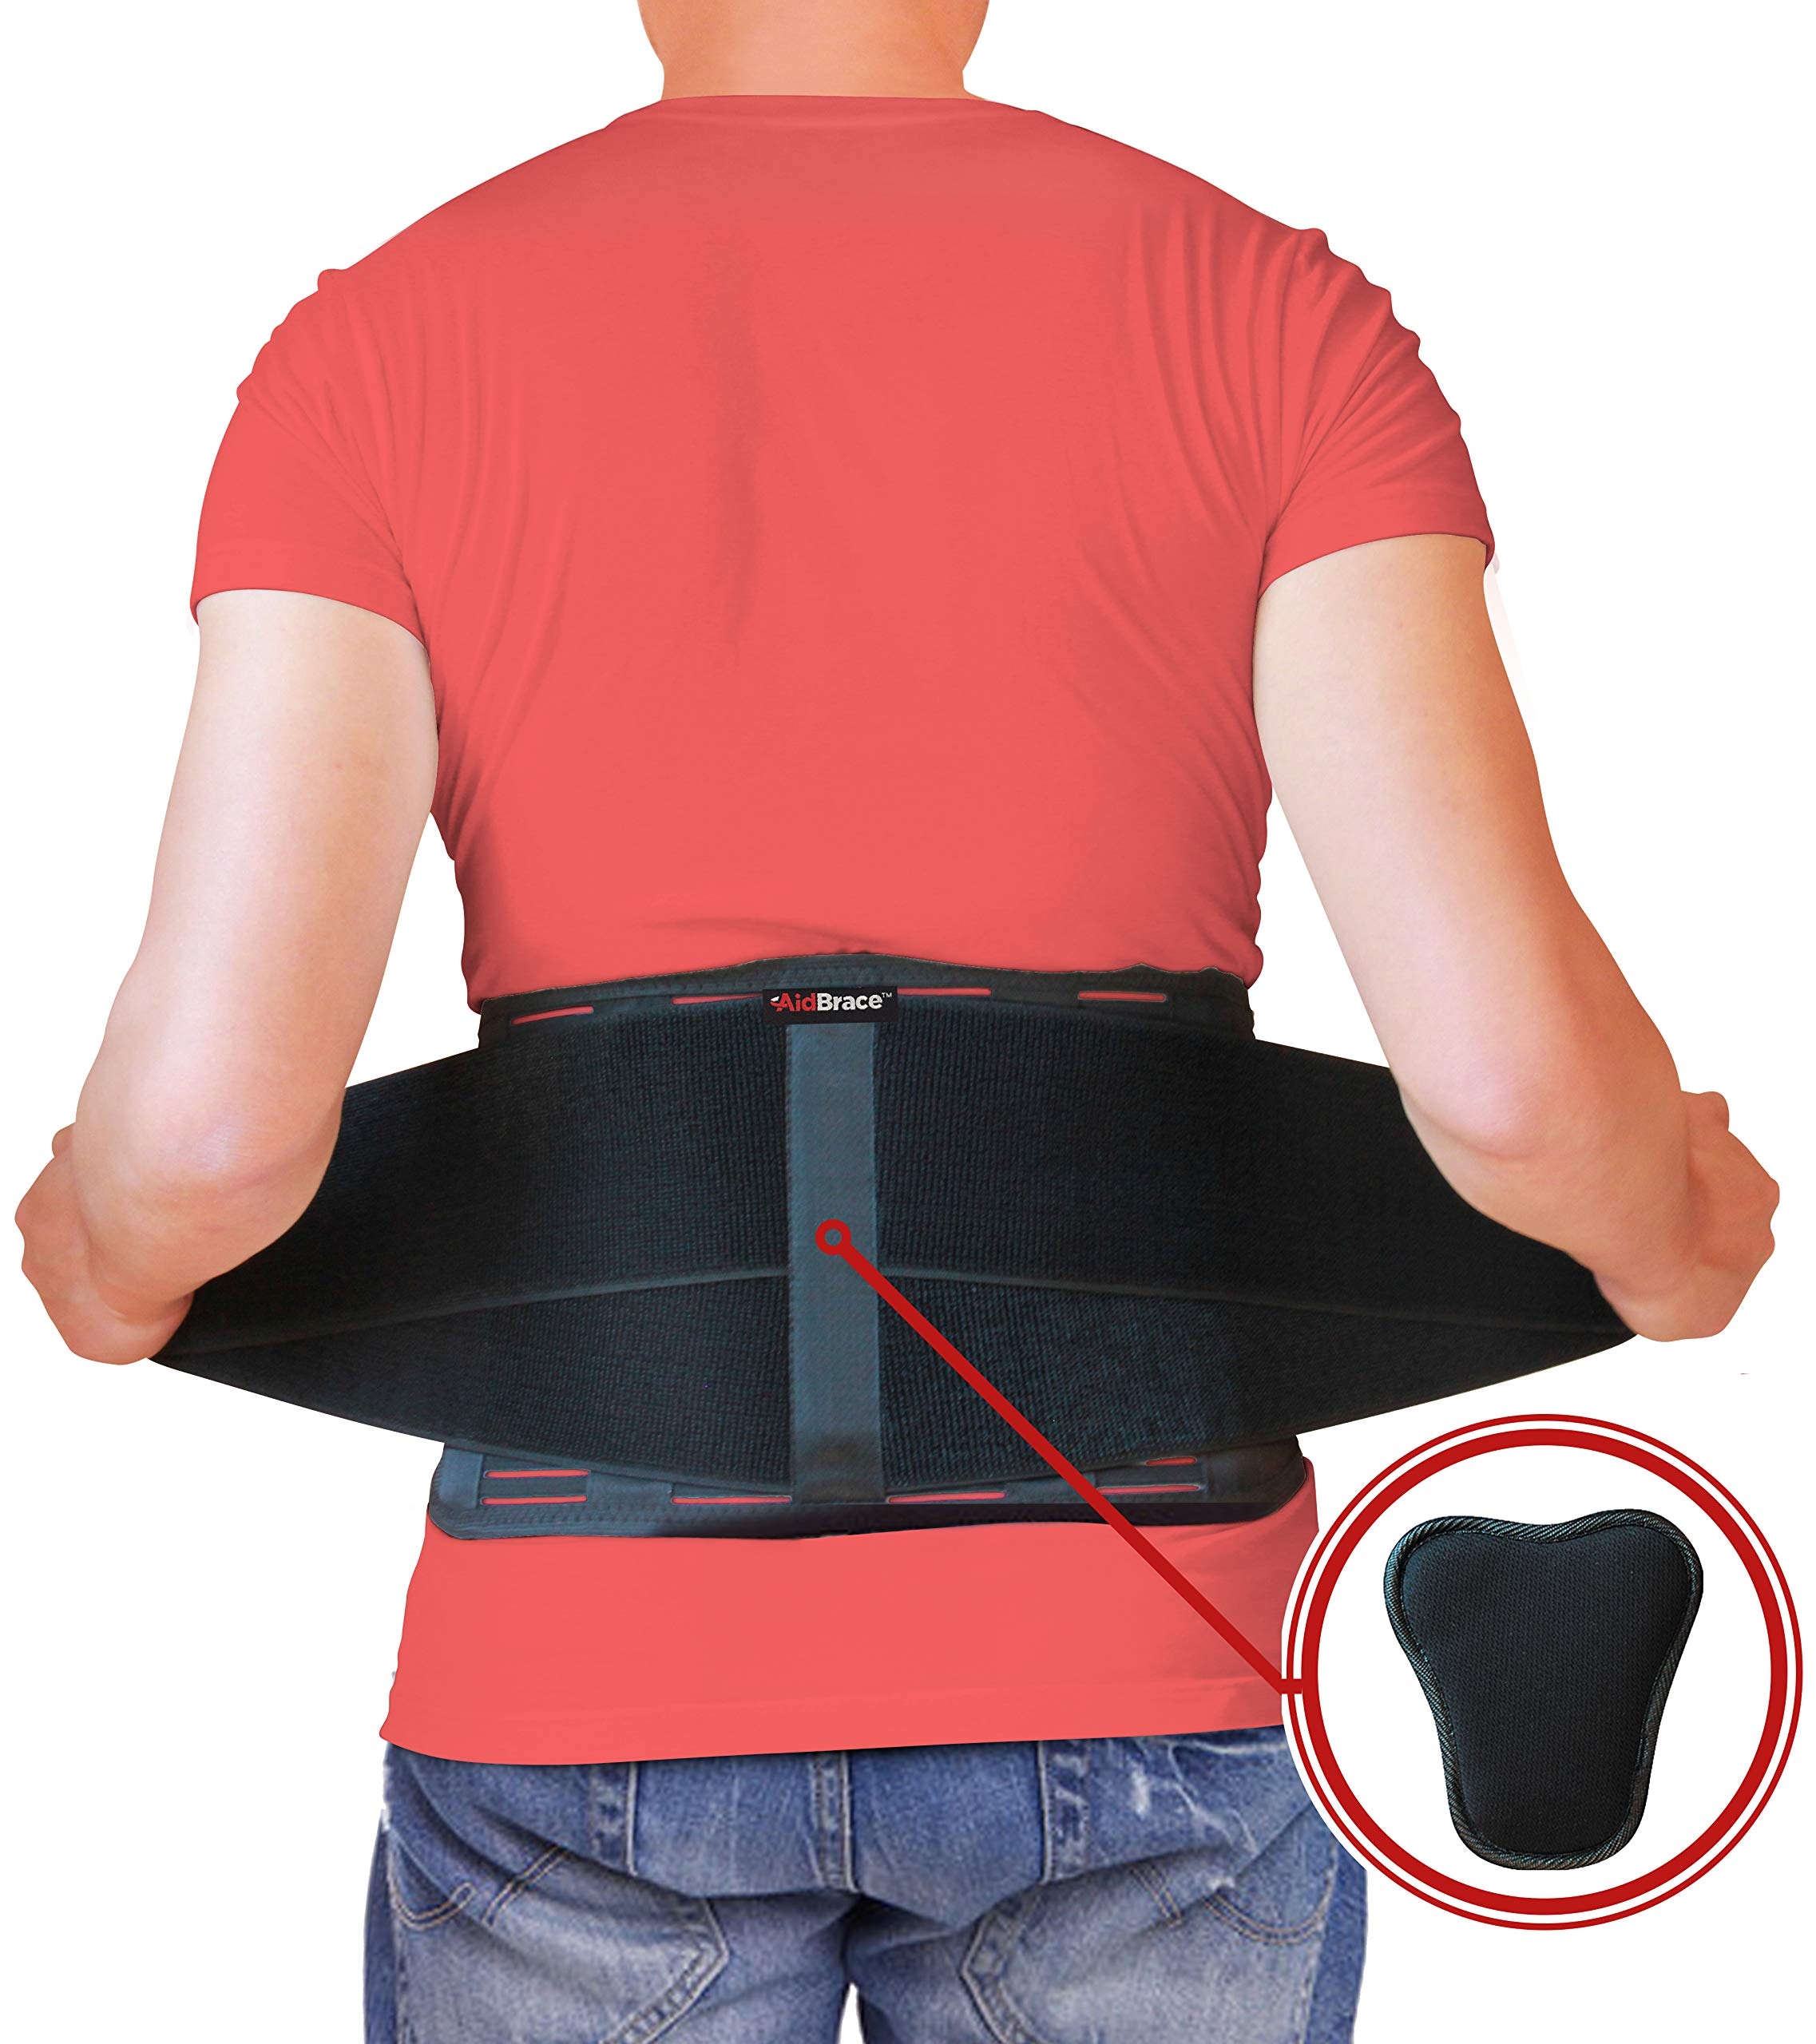 9ec9af320b668 Back Support Belt by AidBrace - Fast Lower Back Pain Relief - Breathable  Back Mesh with